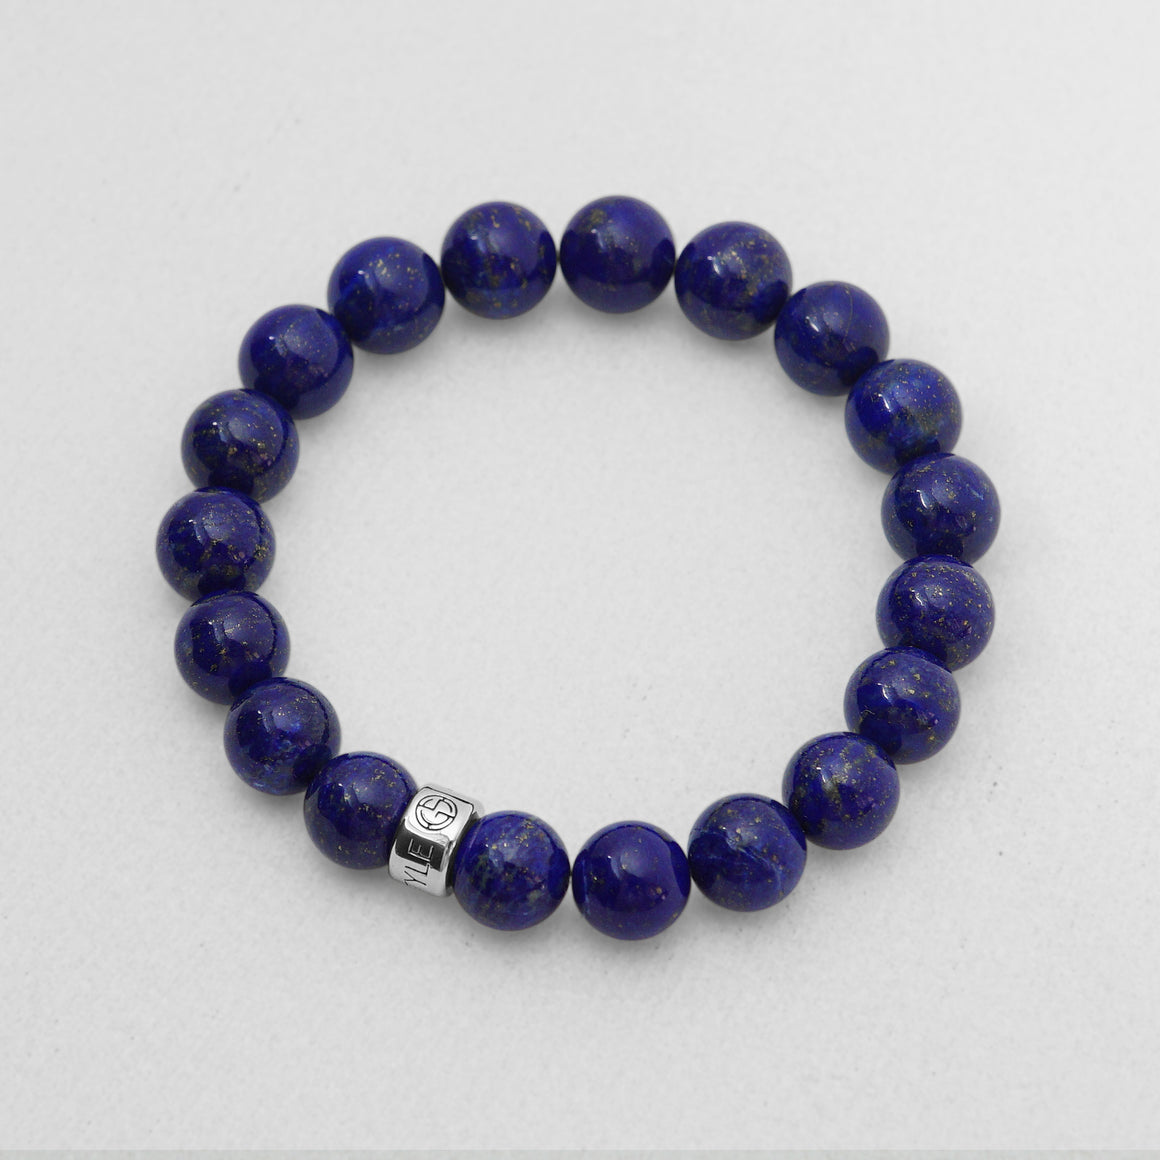 Lapis Lazuli natural gemstone bracelet with silver bead by Gems In Style Jewellery